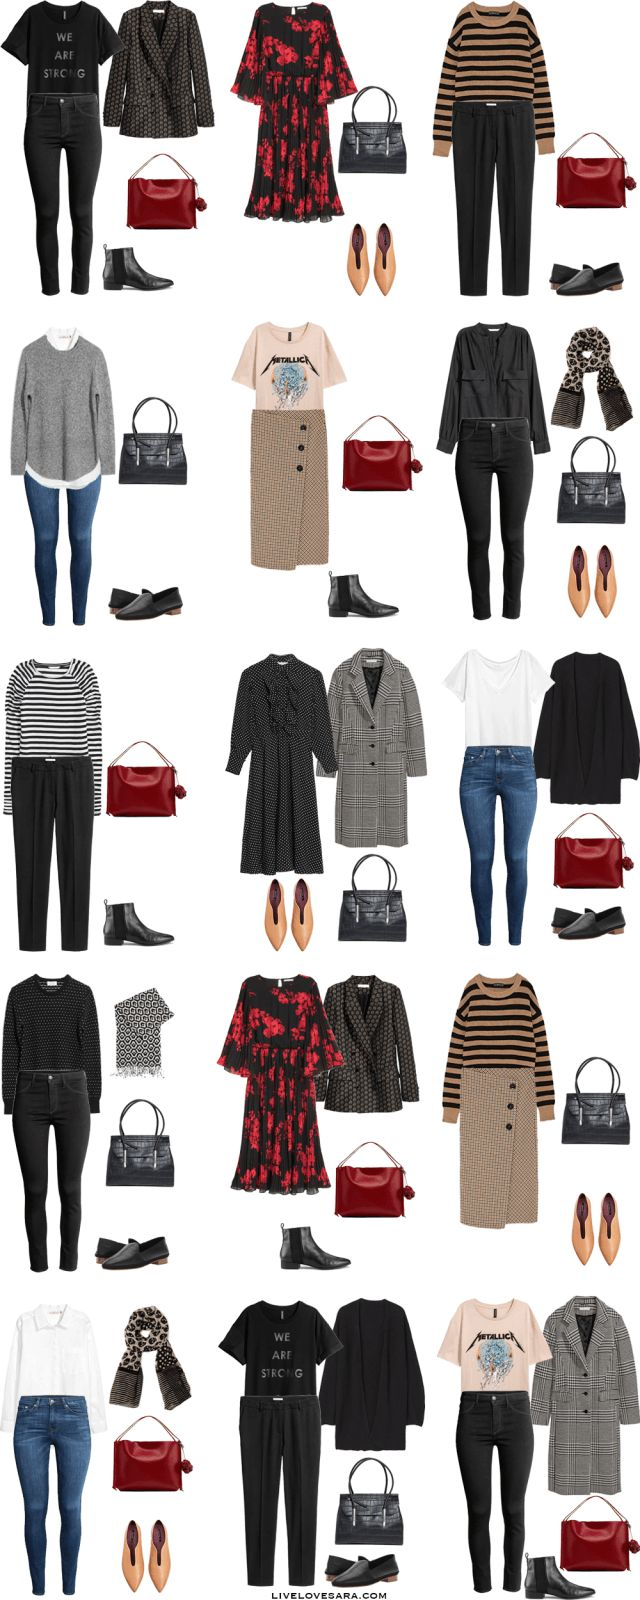 55 Best Capsule Wardrobe Images On Pinterest